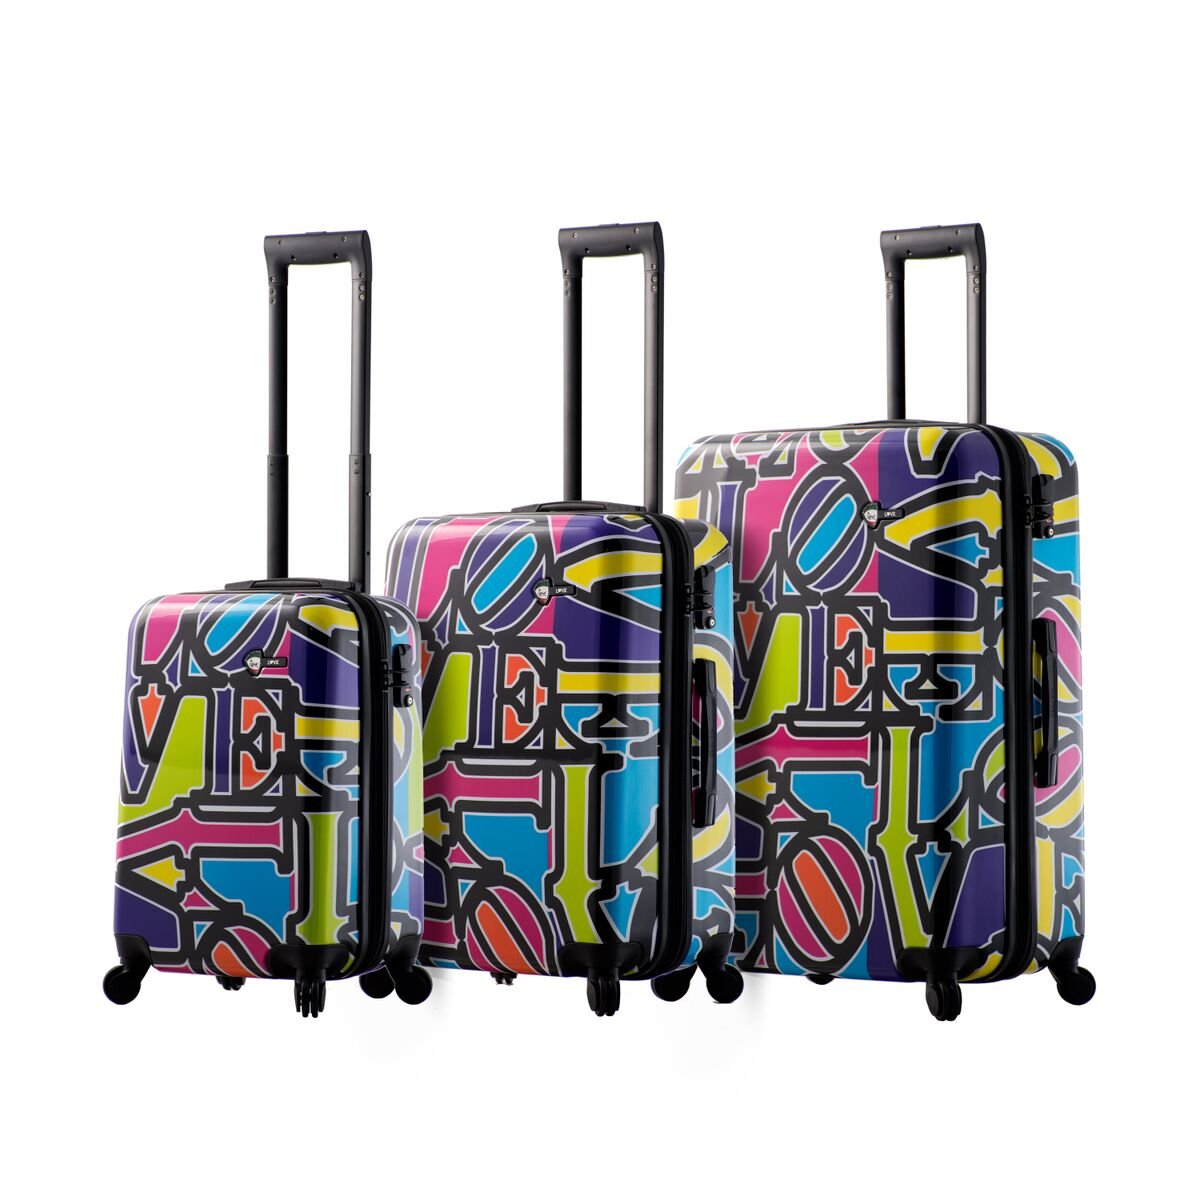 Mia Toro Love Collection Hard Side Spinner Luggage 3PC Set, Lcp, Love Collection Purple